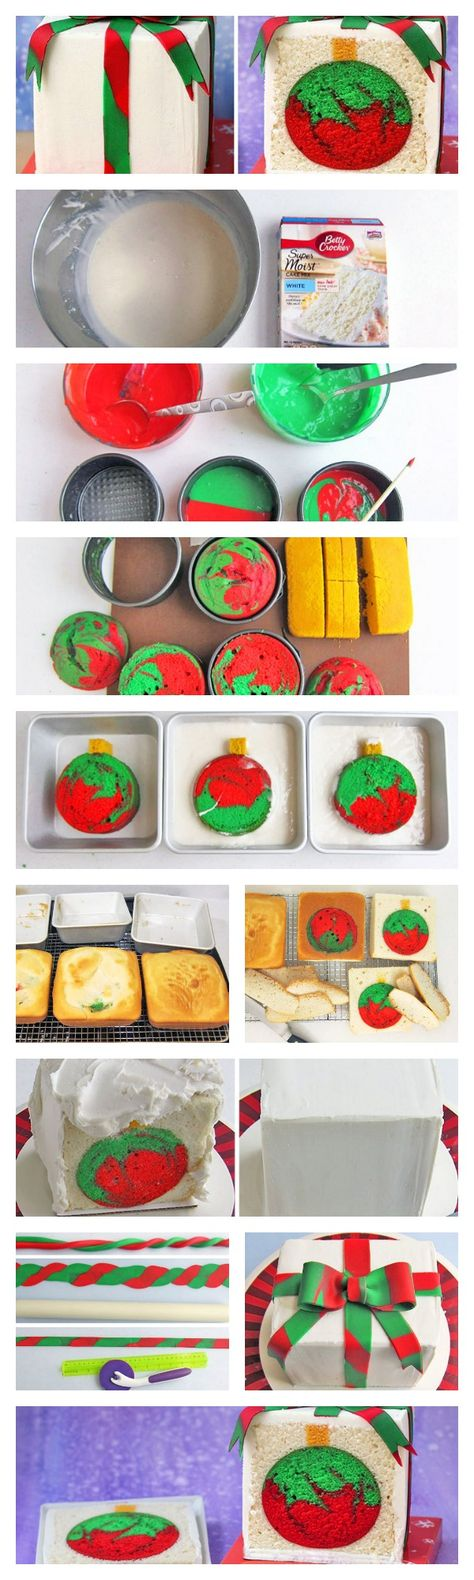 A cake decorated to look like a Christmas present is cut to reveal an ornament hiding inside!